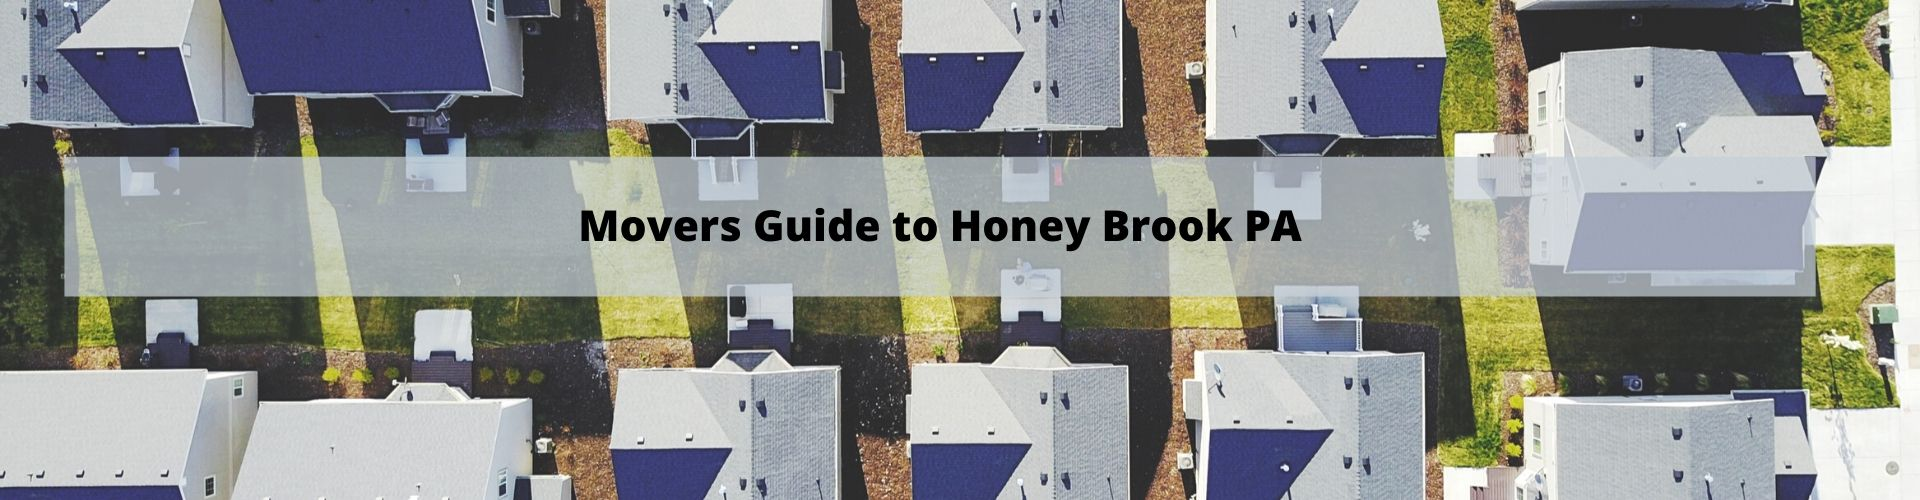 Honey Brook PA Movers Guide